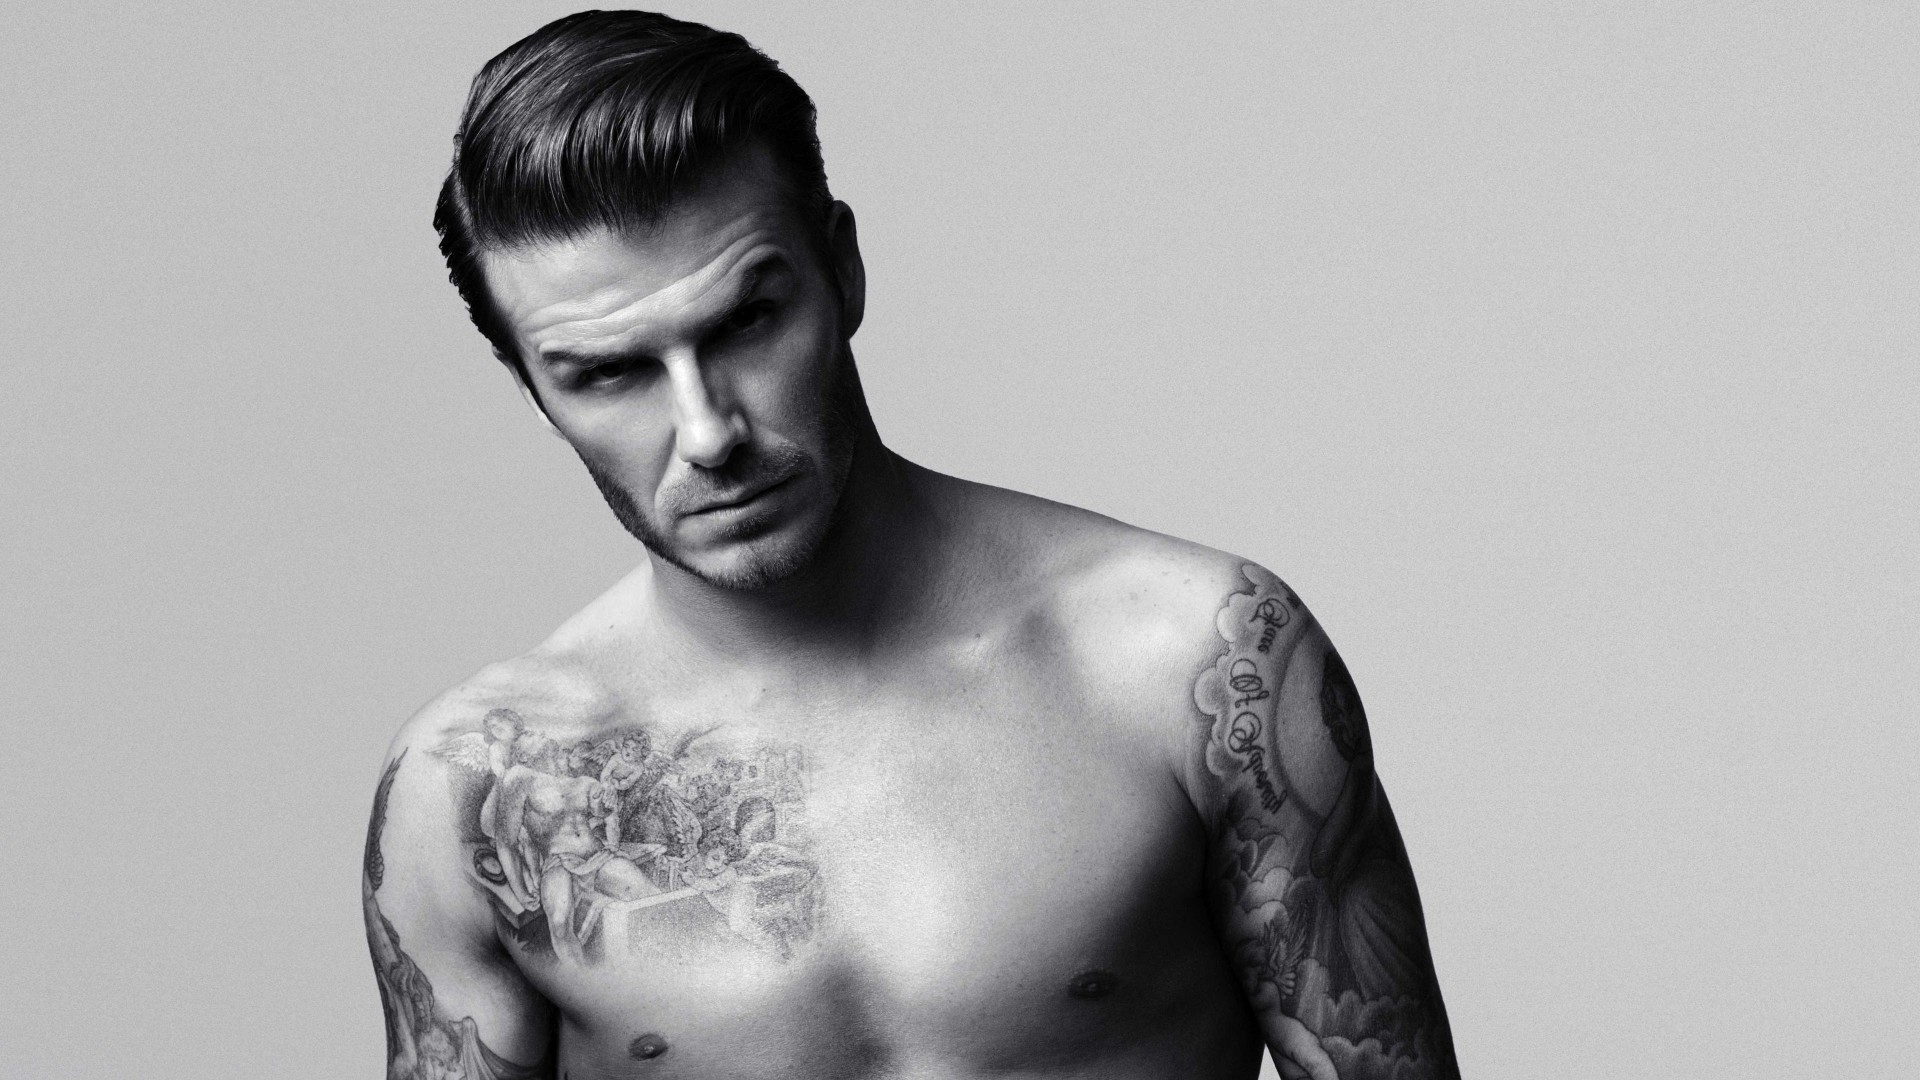 Hd Wallpaper David Beckham 15066 Wallpaper Wallpaper hd 1920x1080